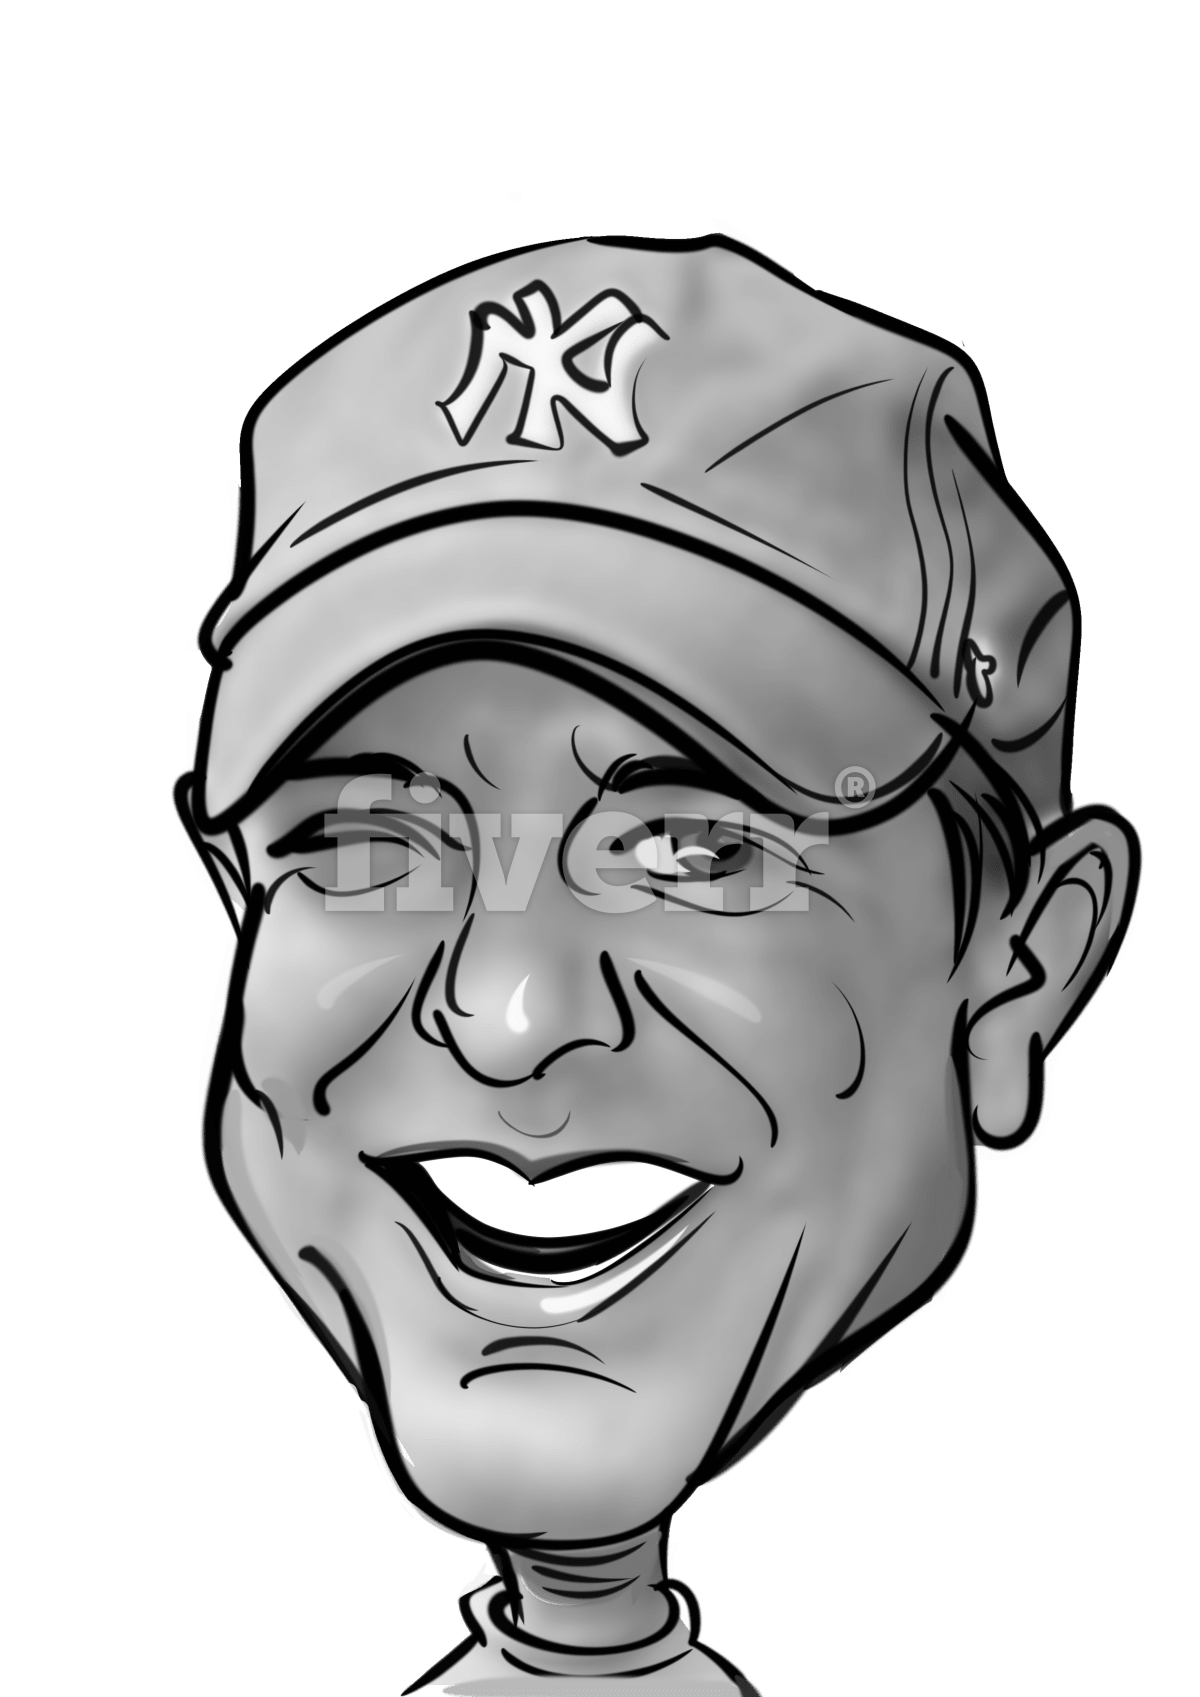 Portraits drawing easy. I will draw your clip art black and white